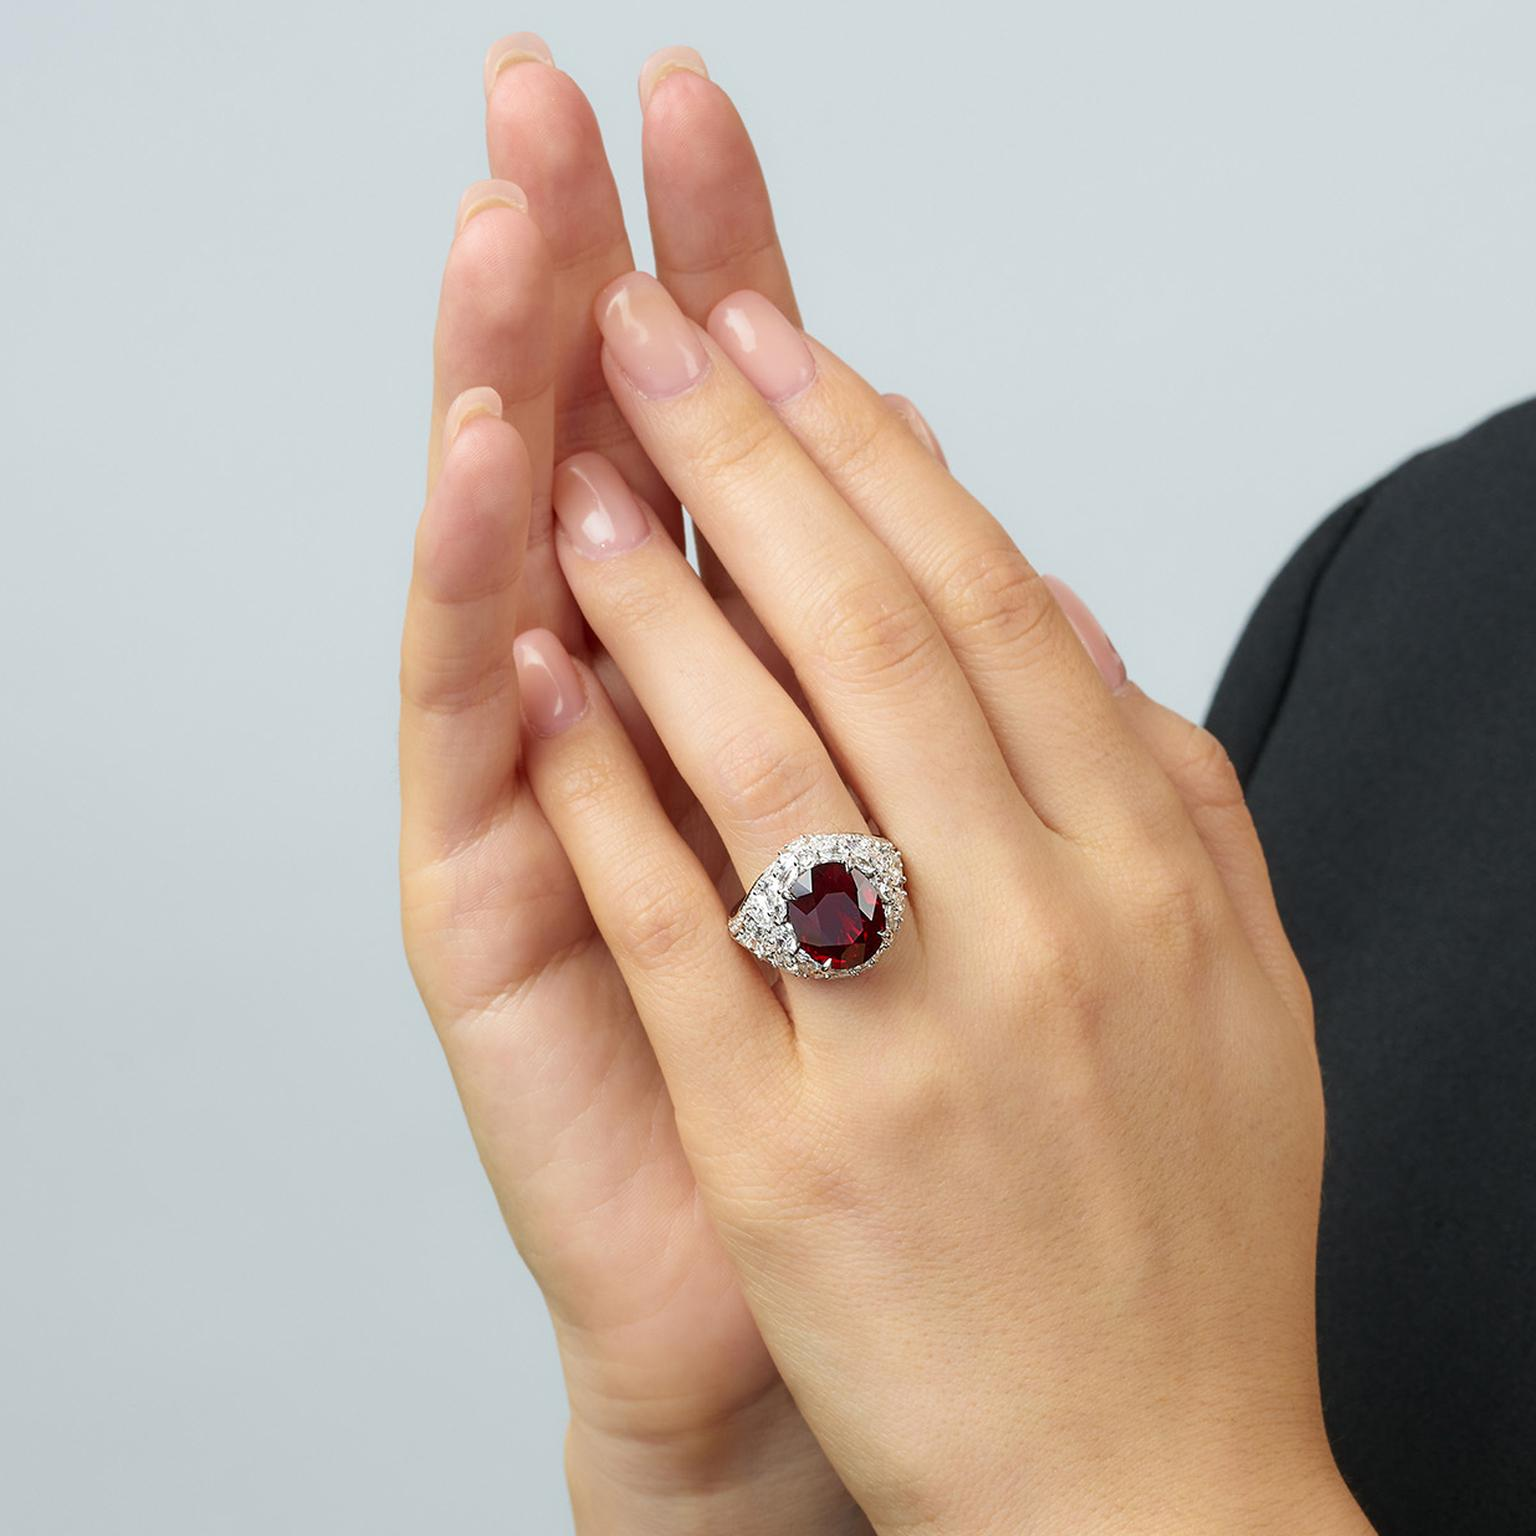 Lot 588 Ruby and diamonds ring Phillips auction on model